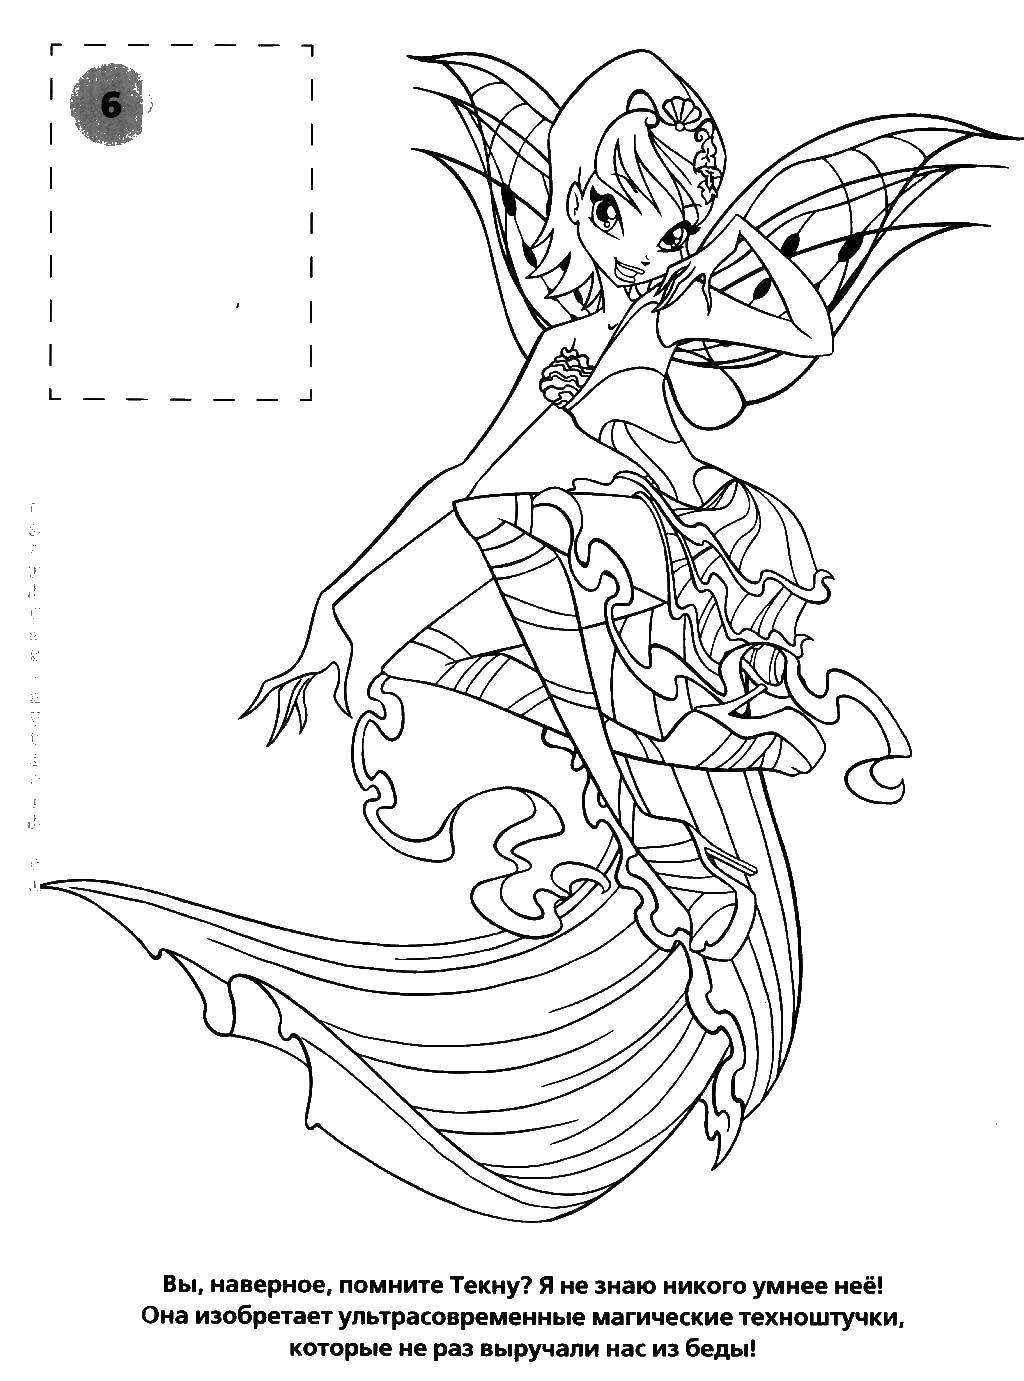 Online coloring pages Coloring pageTecna from winx club Winx